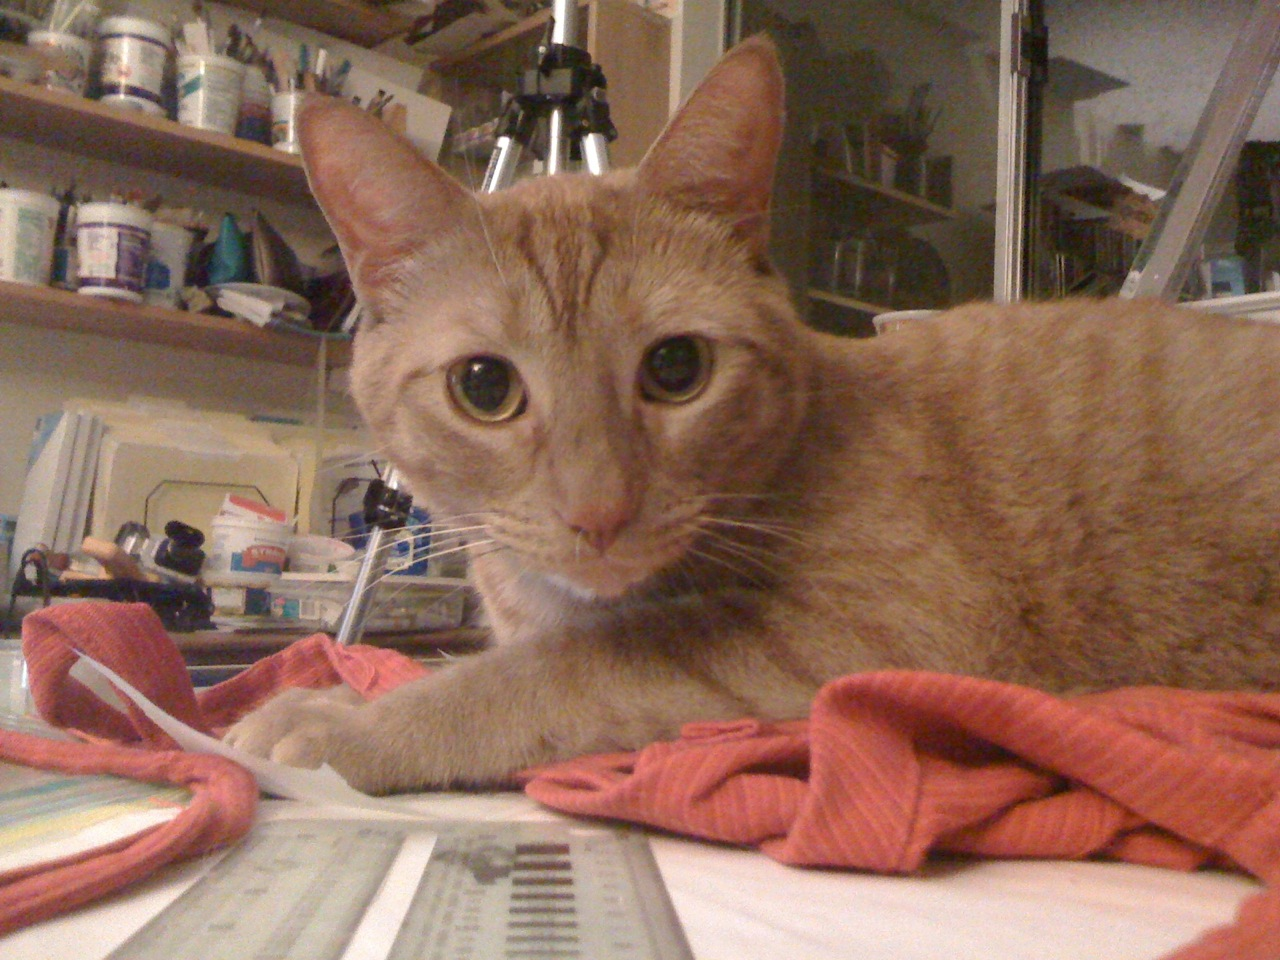 Louis the Cat takes over the drafting table